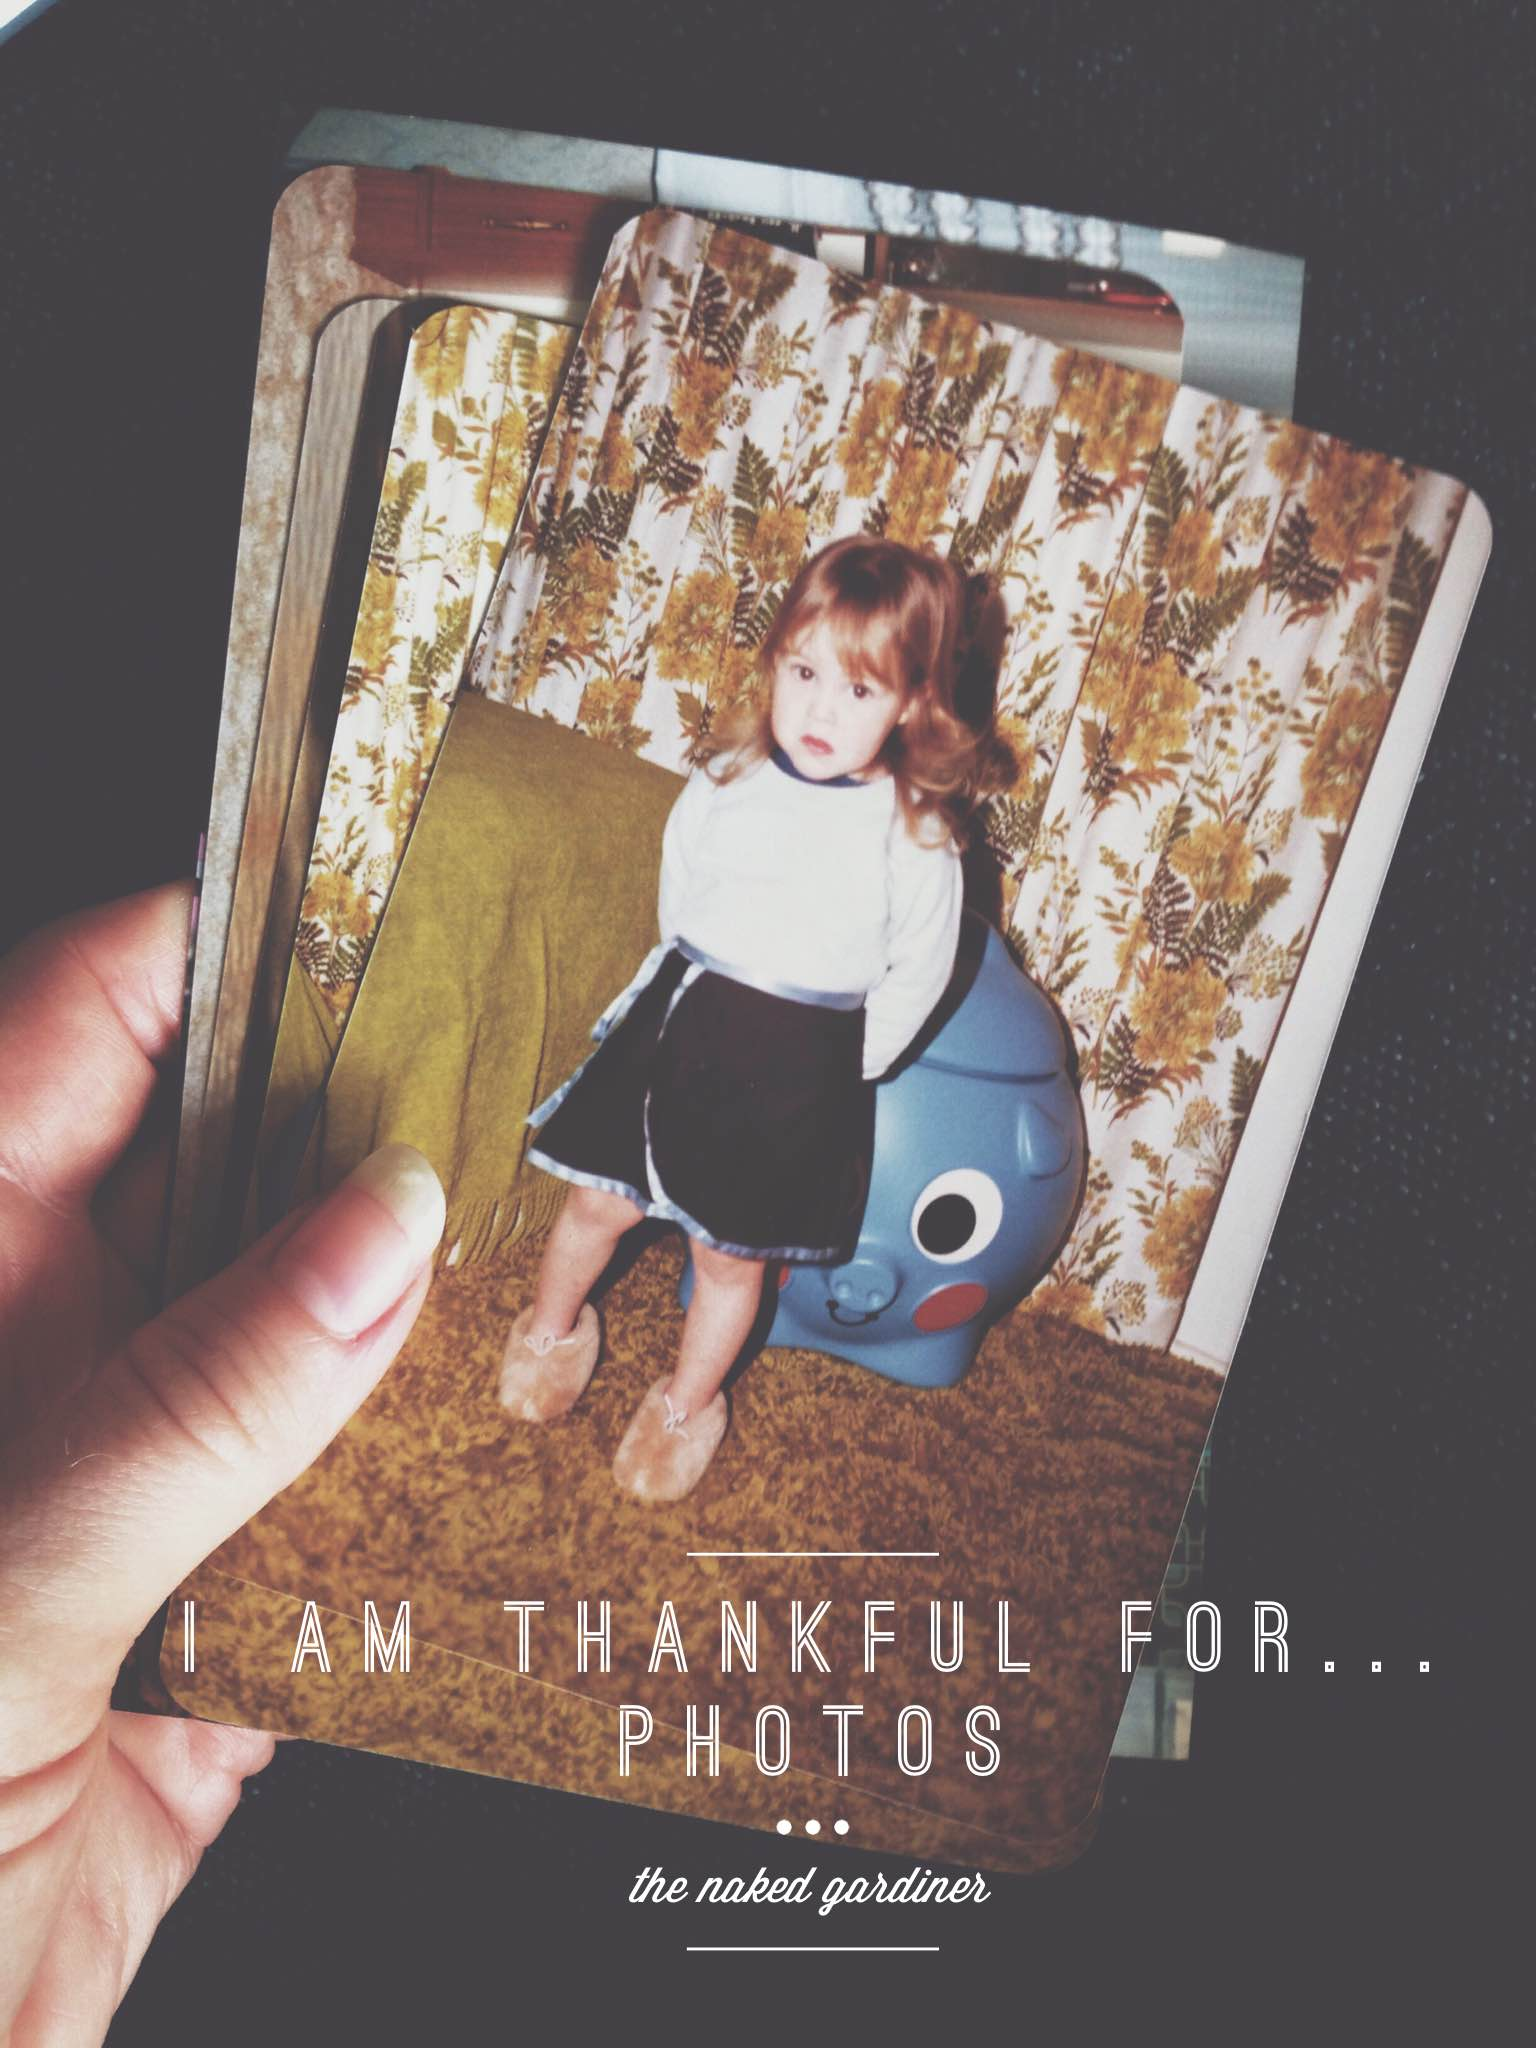 thankful-thursdays-photos-thenakedgardiner